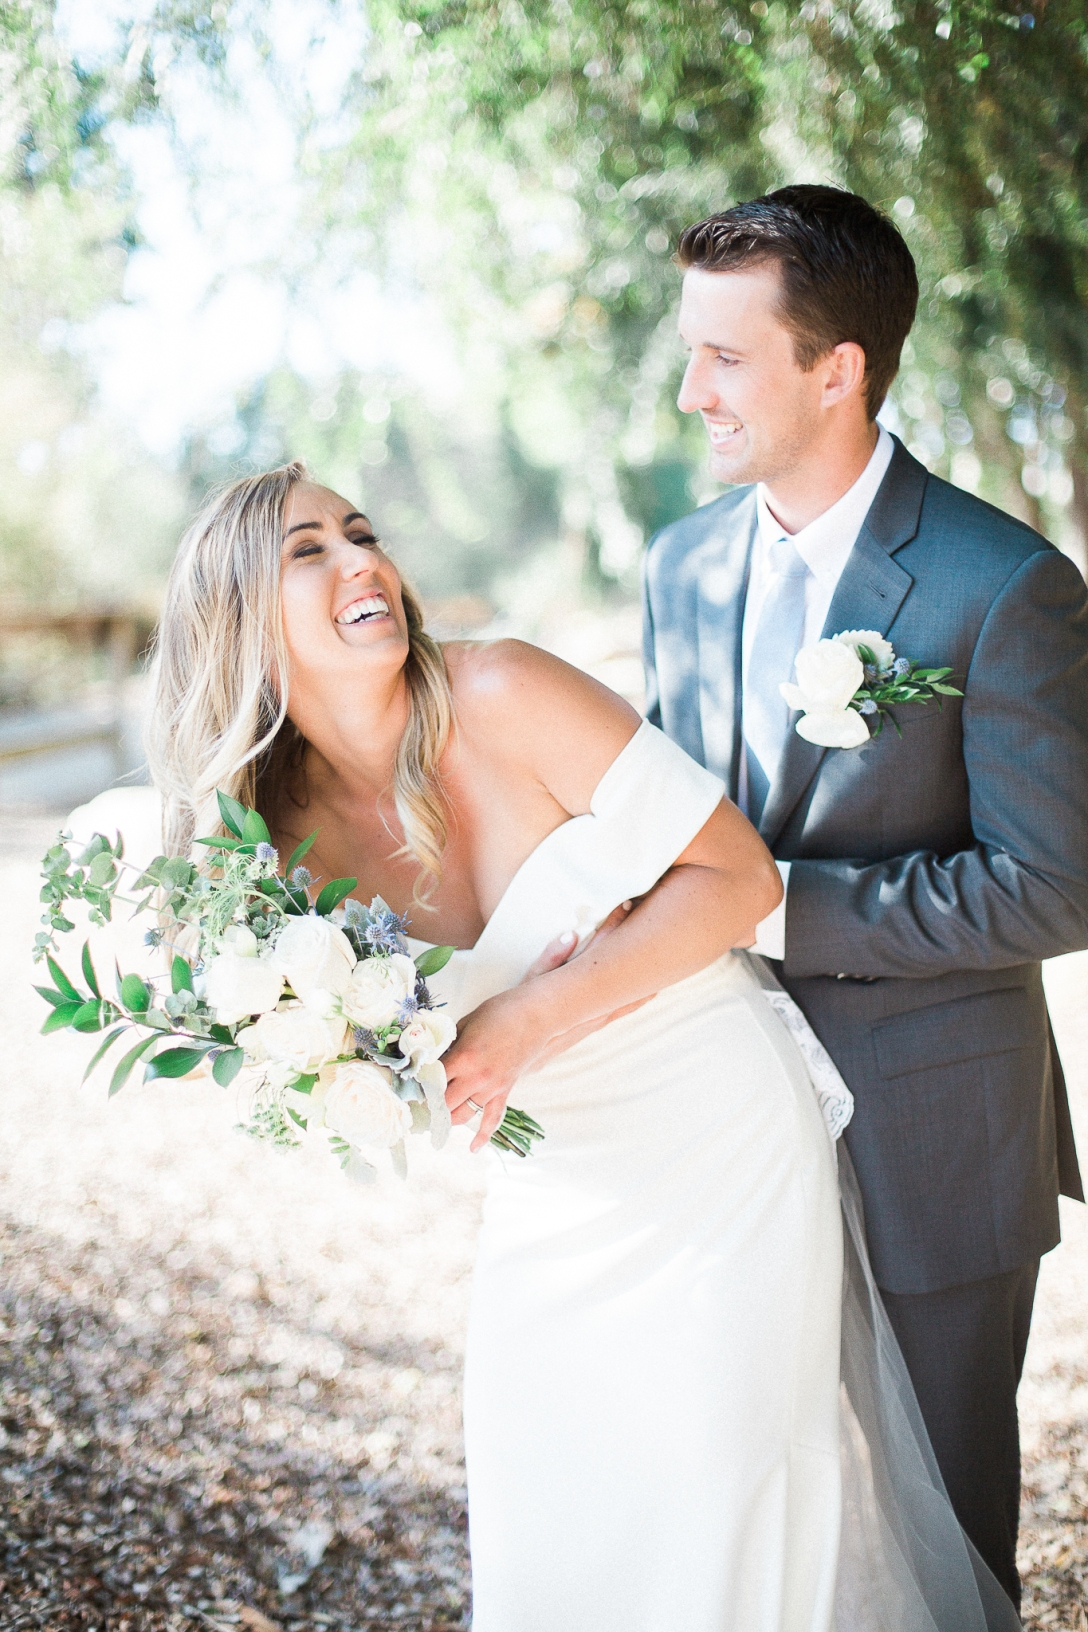 Katy-Steve-Wedding-Tustin-California-62